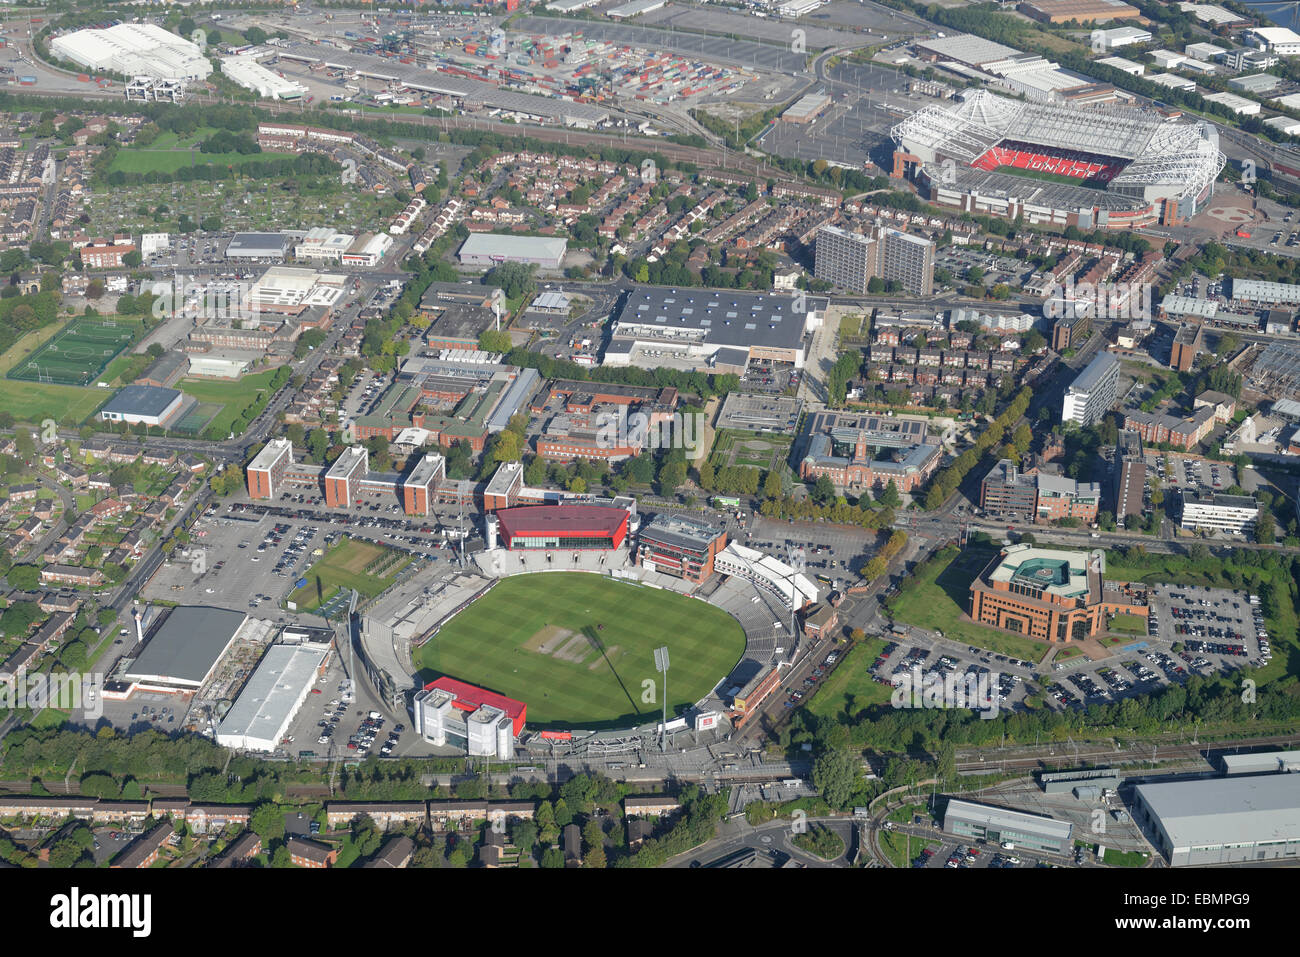 An aerial view of the Old Trafford and Trafford Park areas of Manchester showing both the football and cricket grounds. - Stock Image